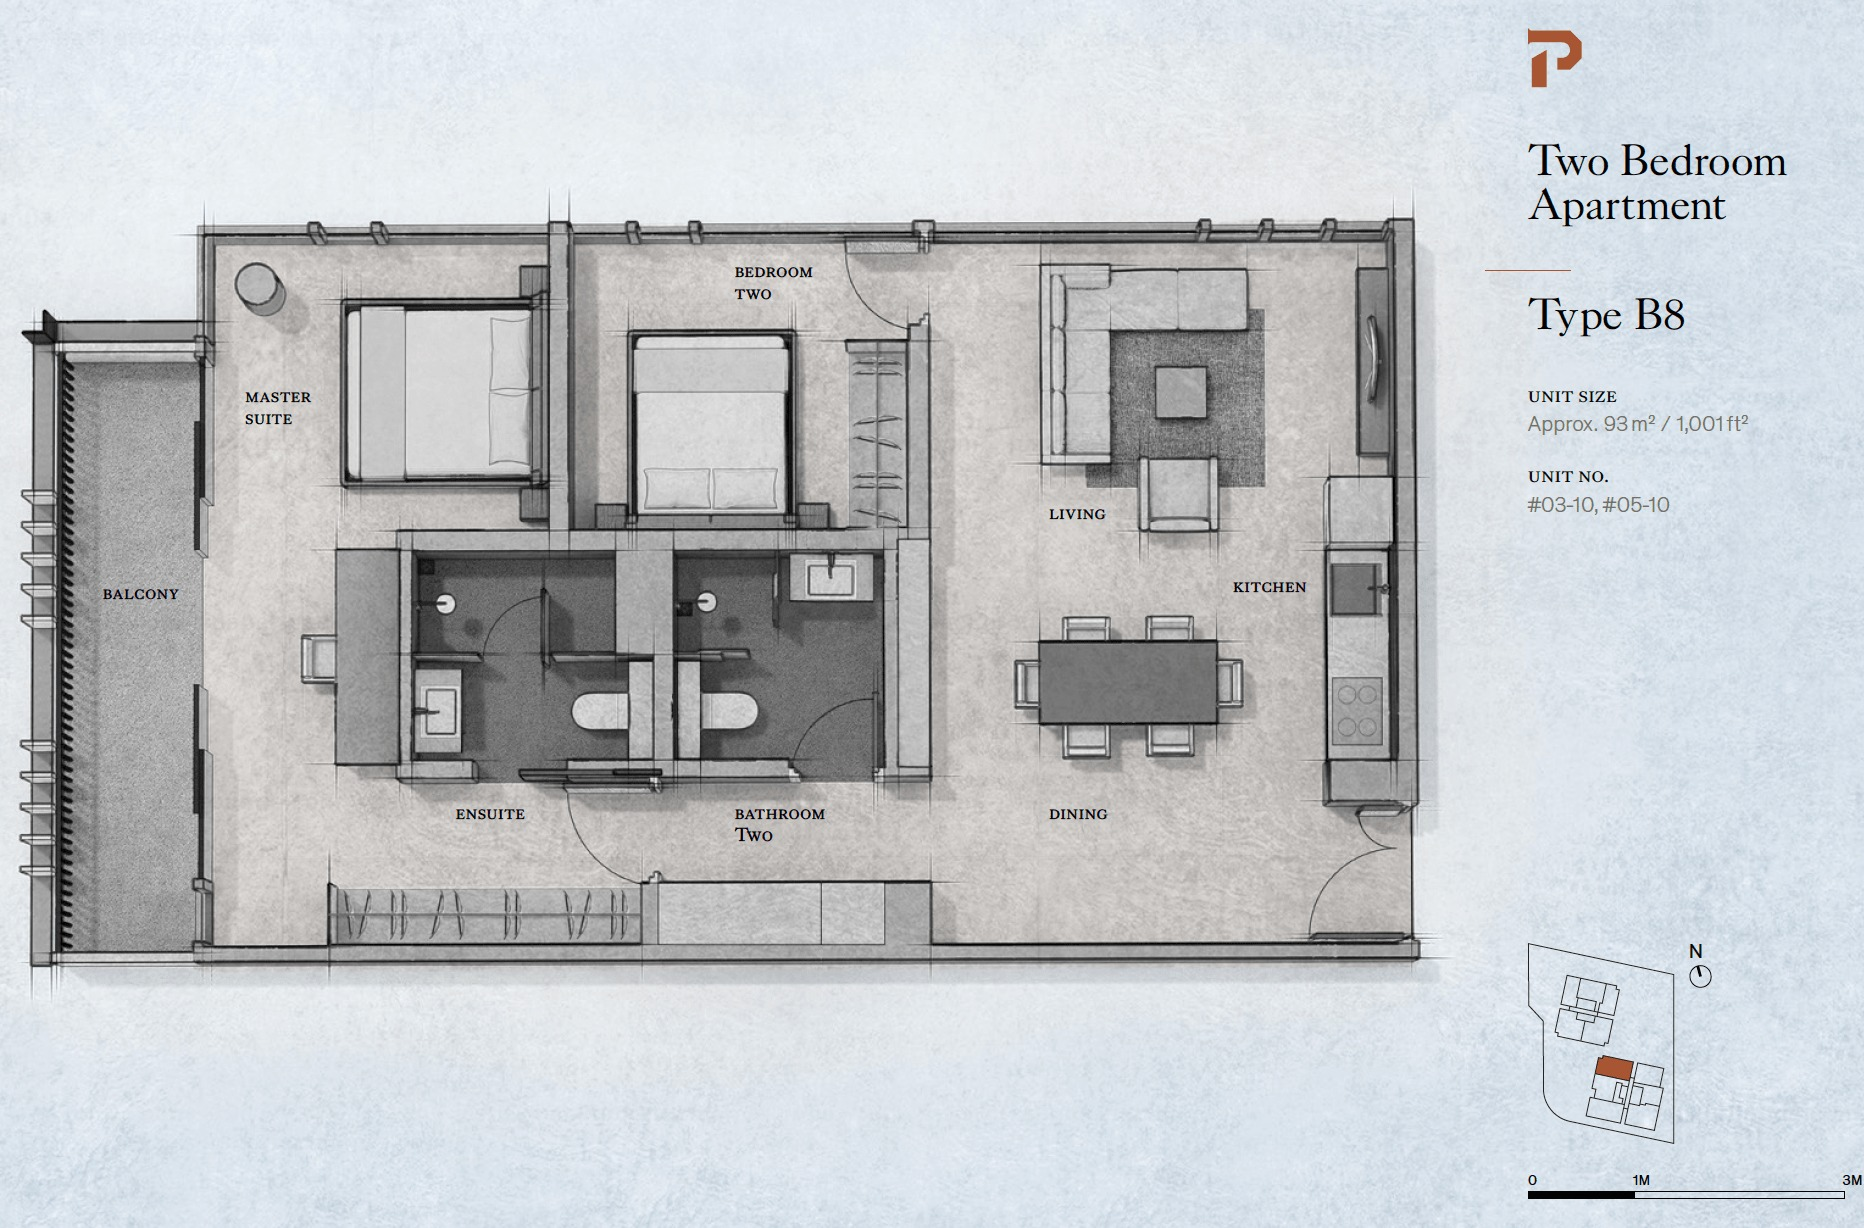 Petit-Jervois-2-bedroom-floor-plan-Type-B8